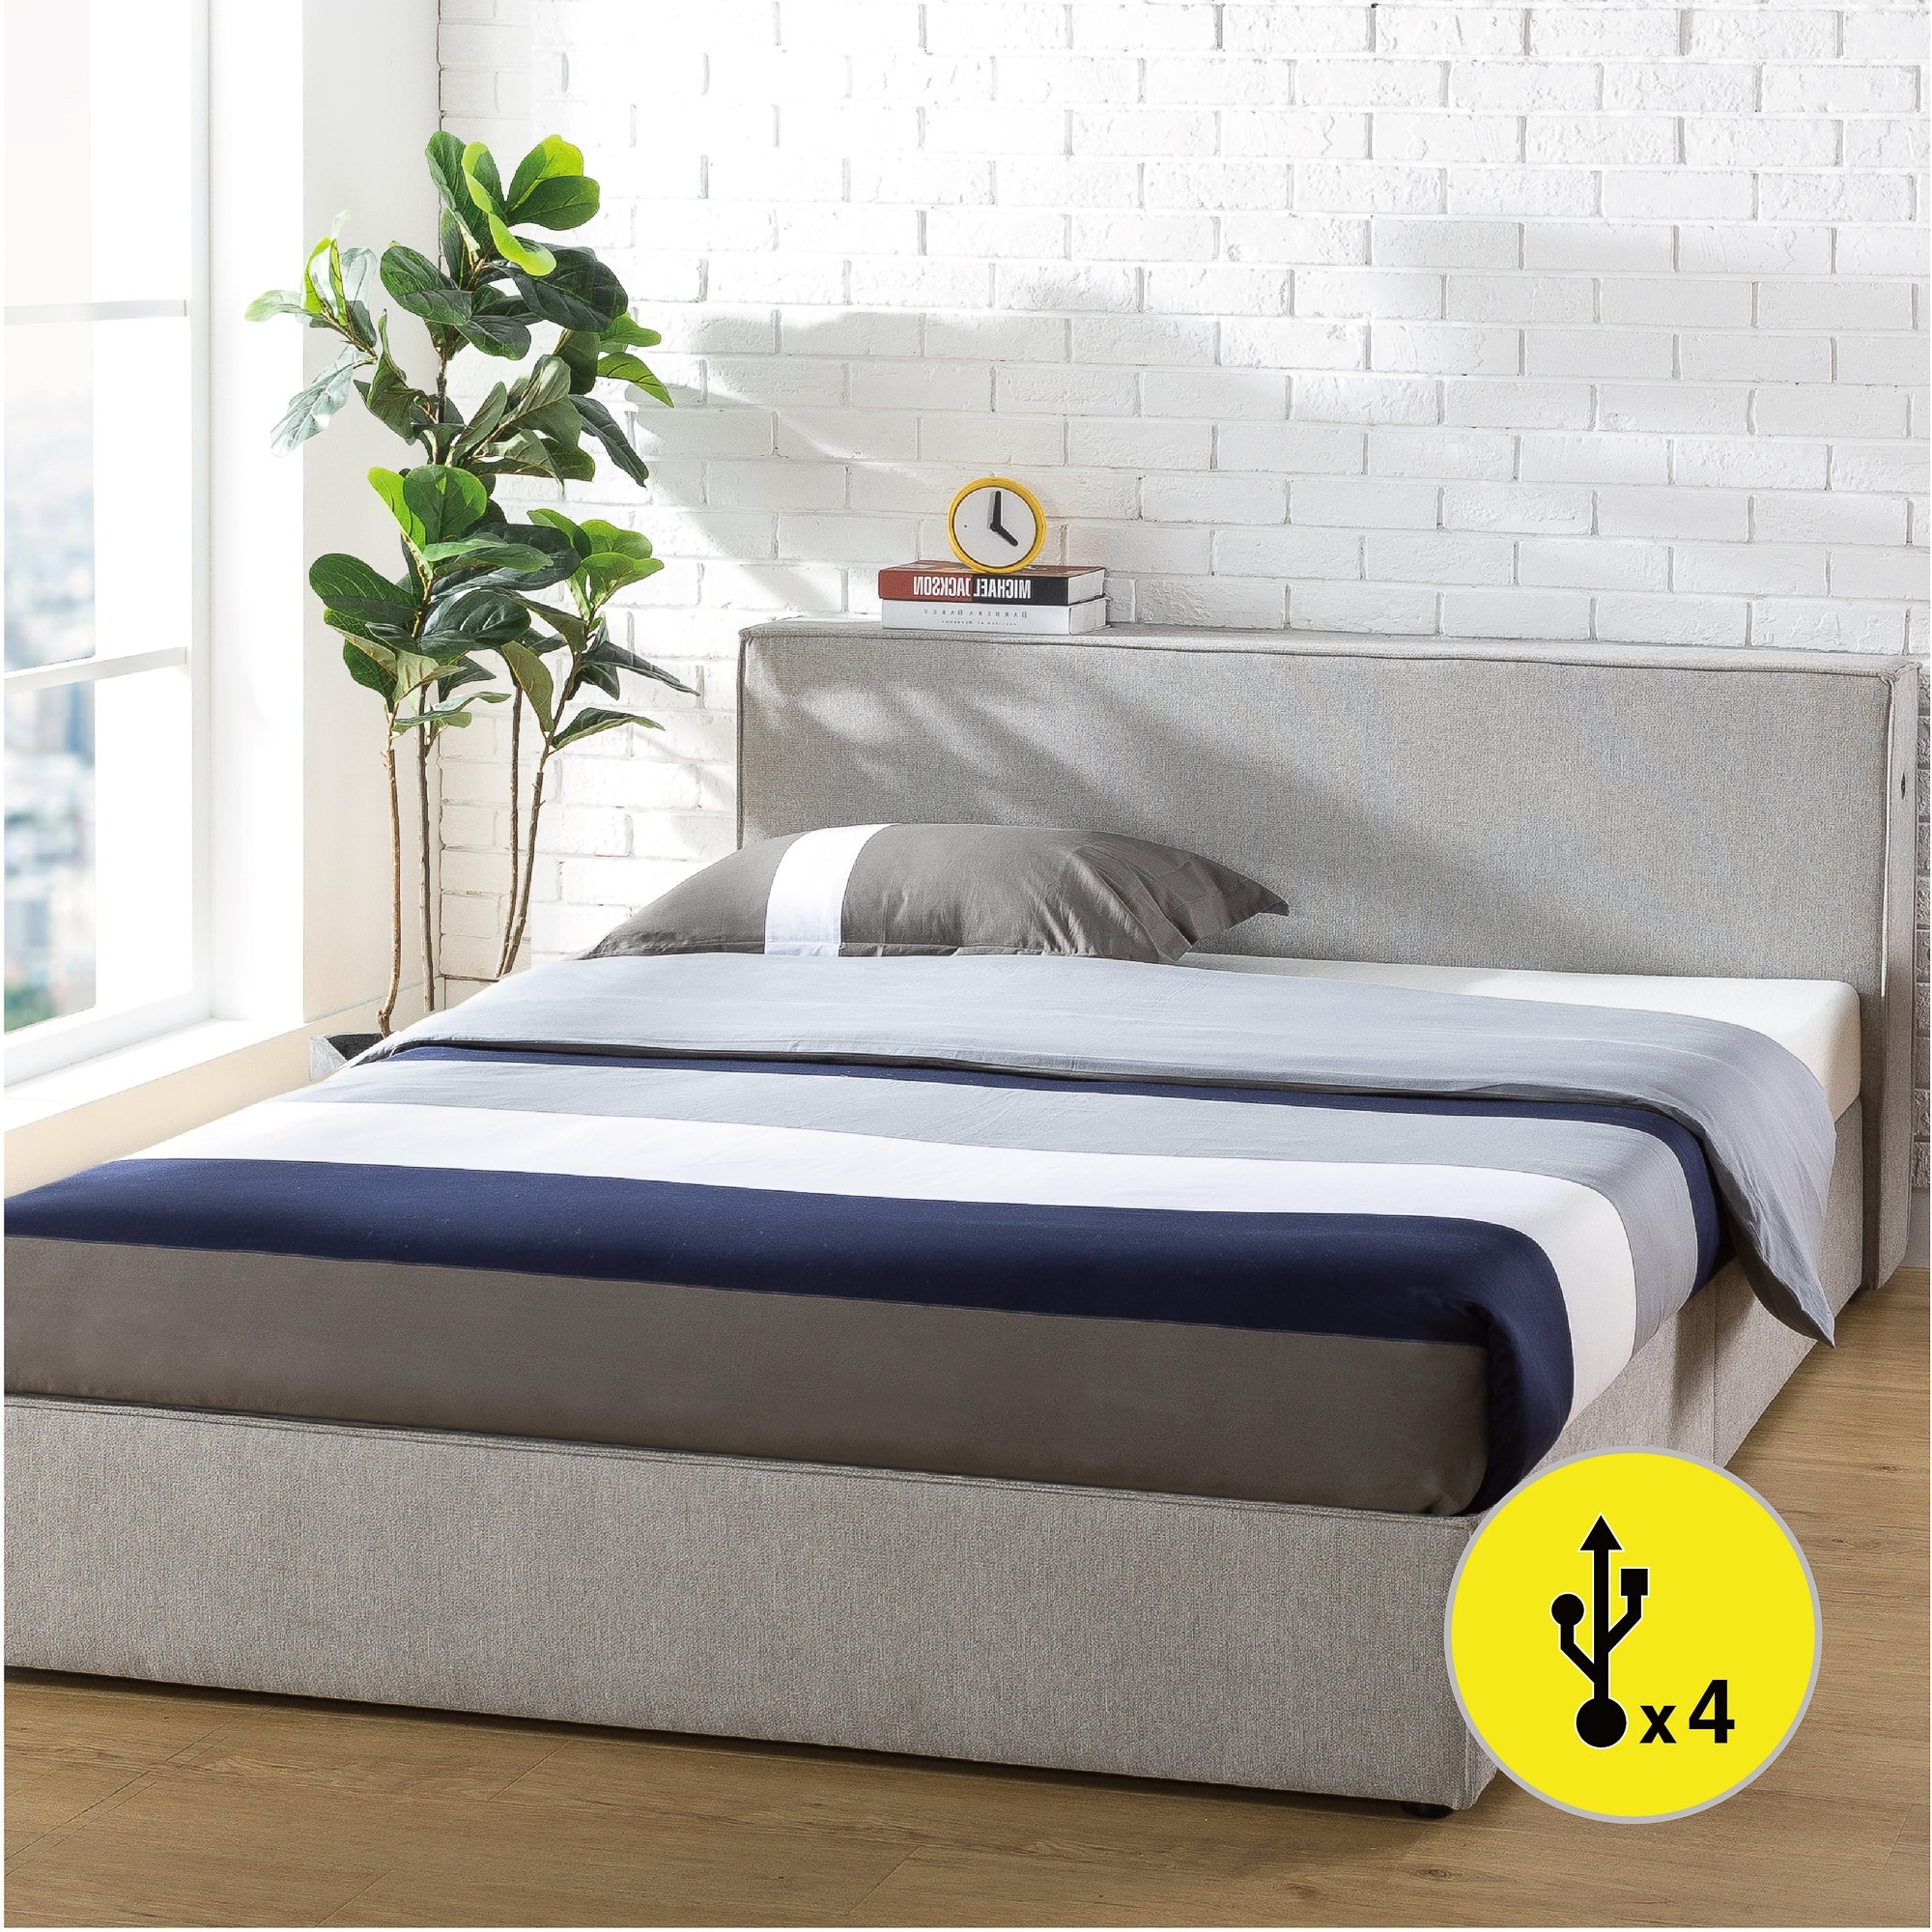 Priage By Zinus Light Grey Upholstered Platform Bed Frame With Headboard Shelf And Usb Overstock 32038780